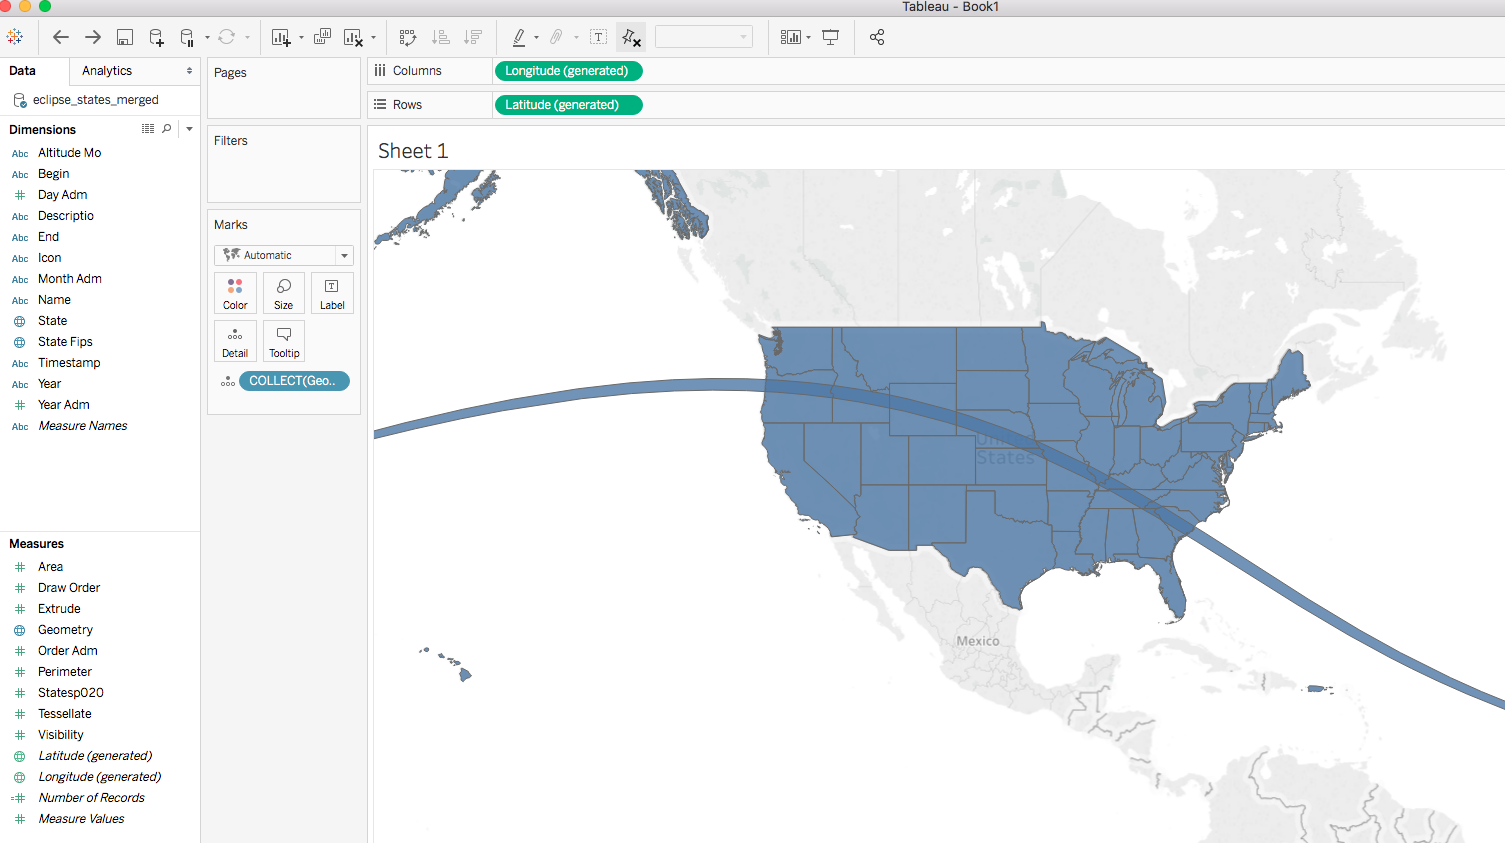 Tableau Will Generate The Laude And Longitude And Render Your States With Eclipse Path